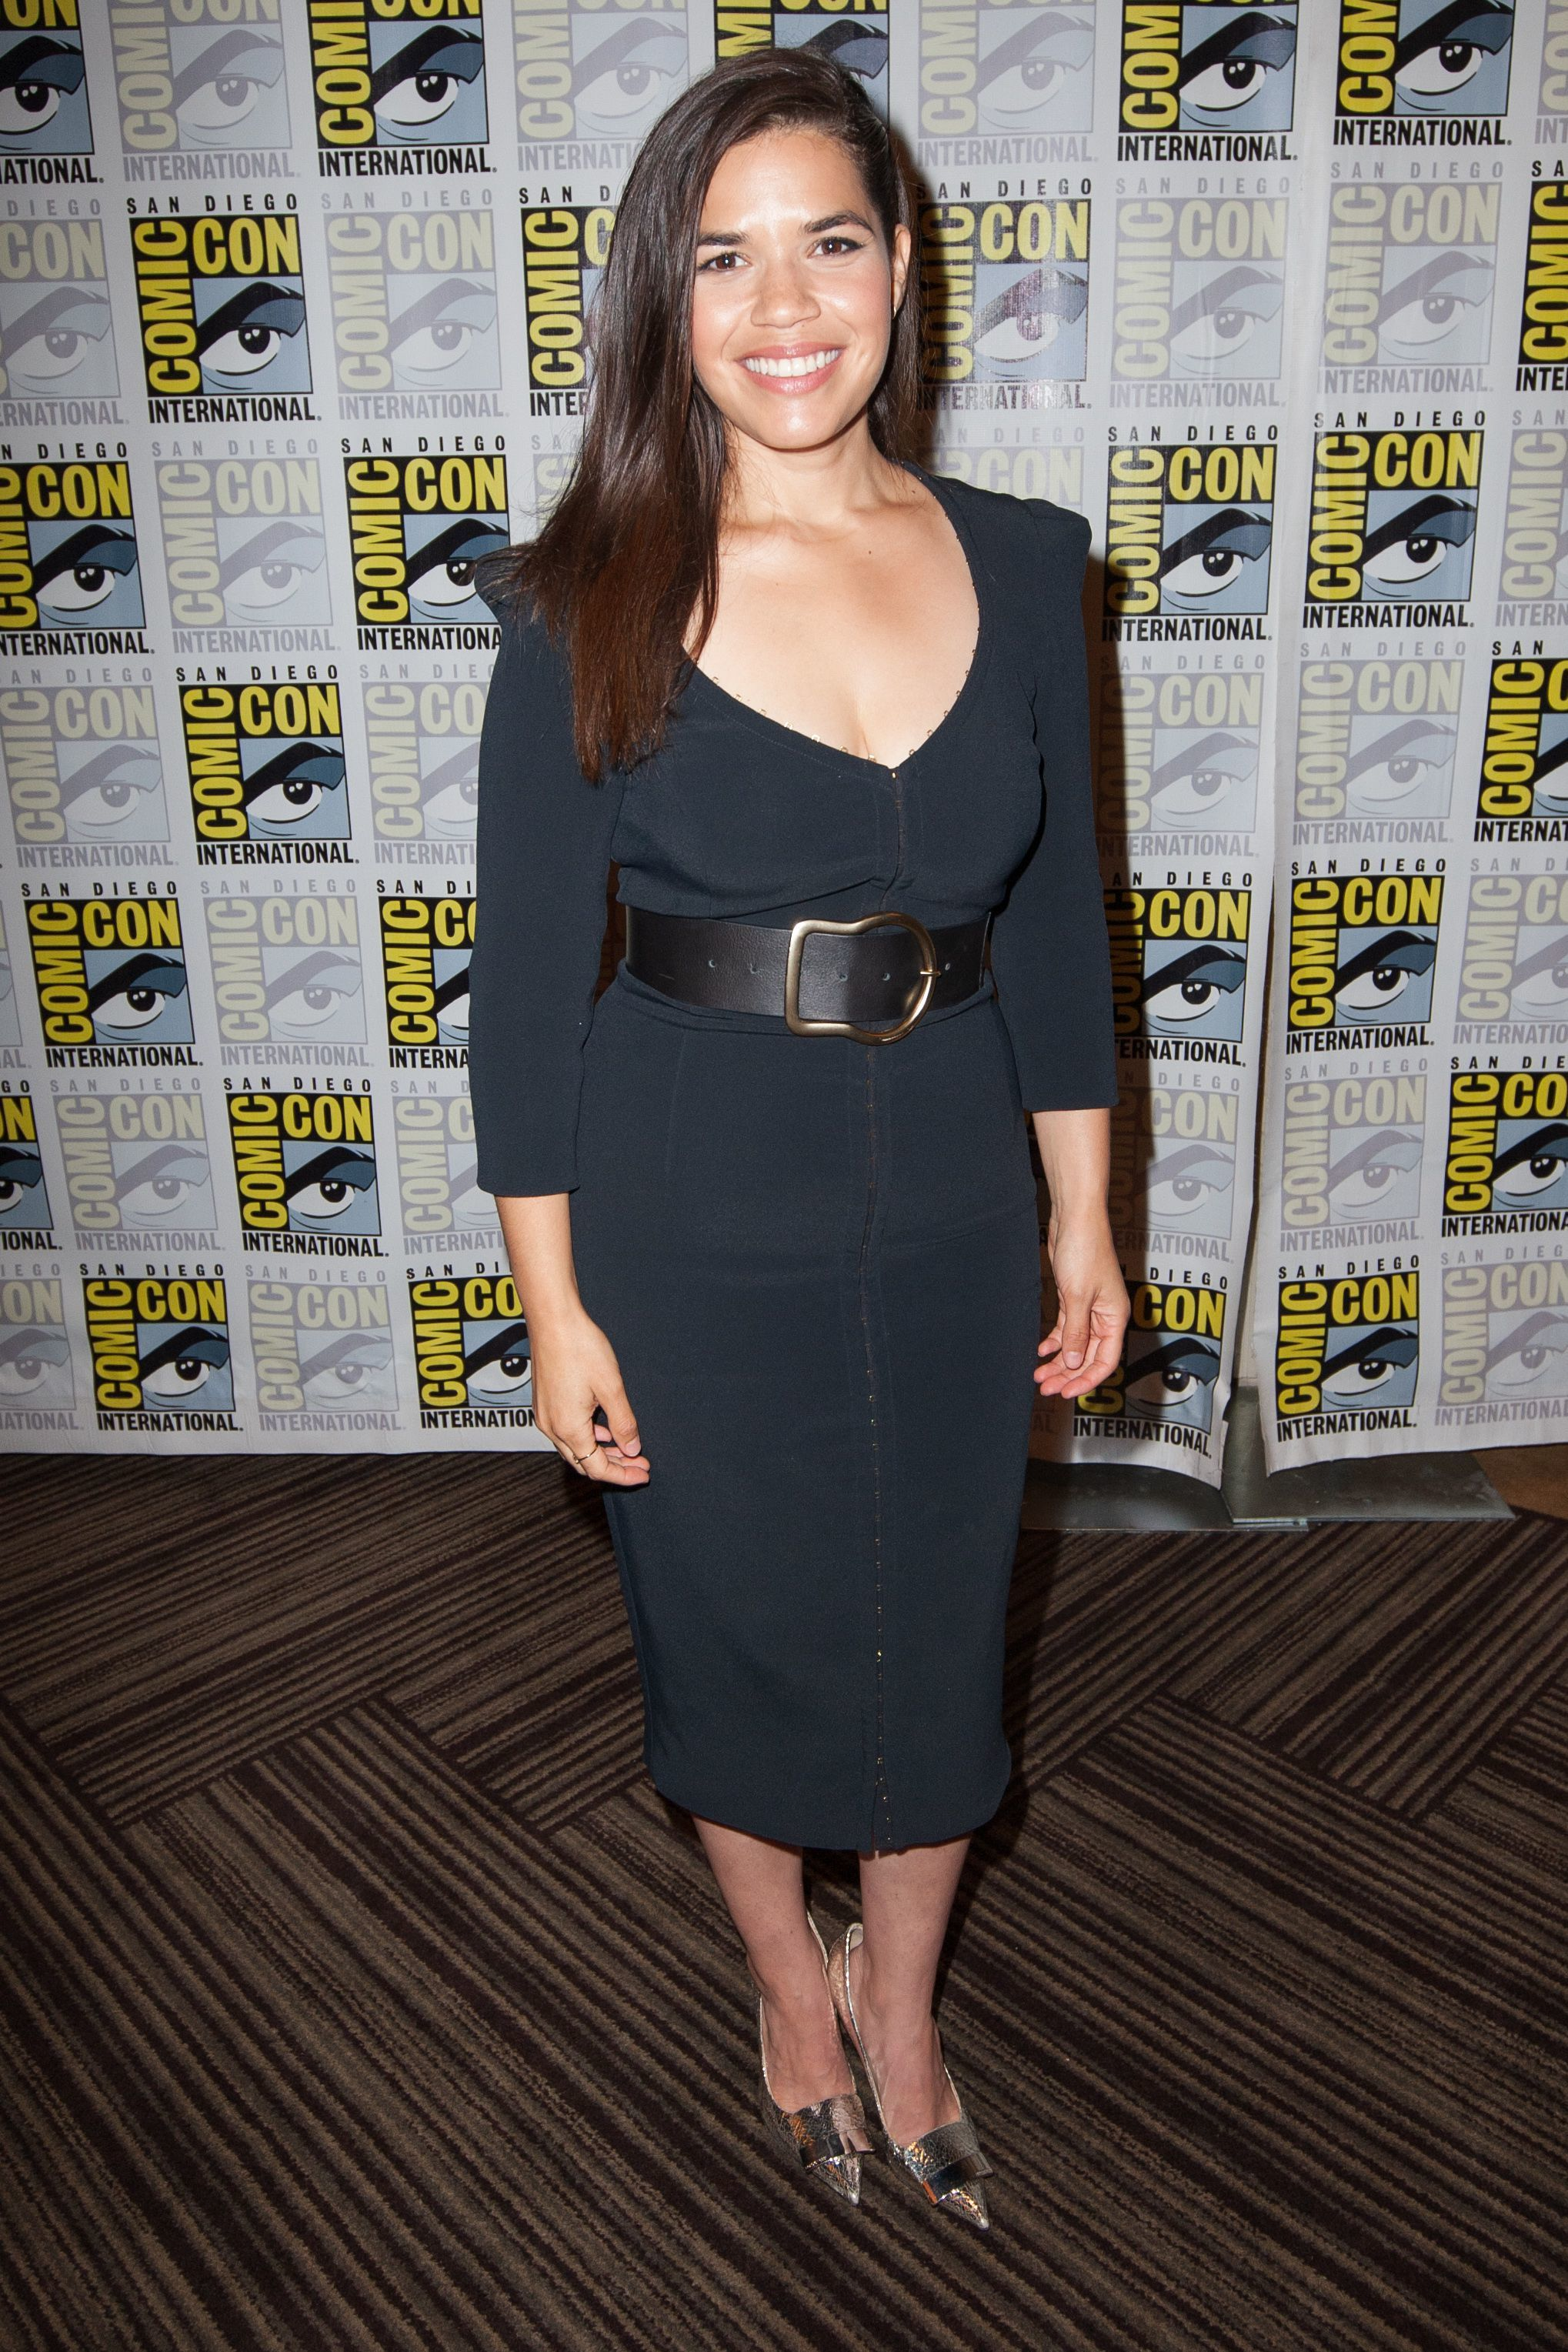 """America Ferrera attends the """"Superstore"""" TV show photocall at Comic Con International in San Diego, California, on July 18, 2019."""